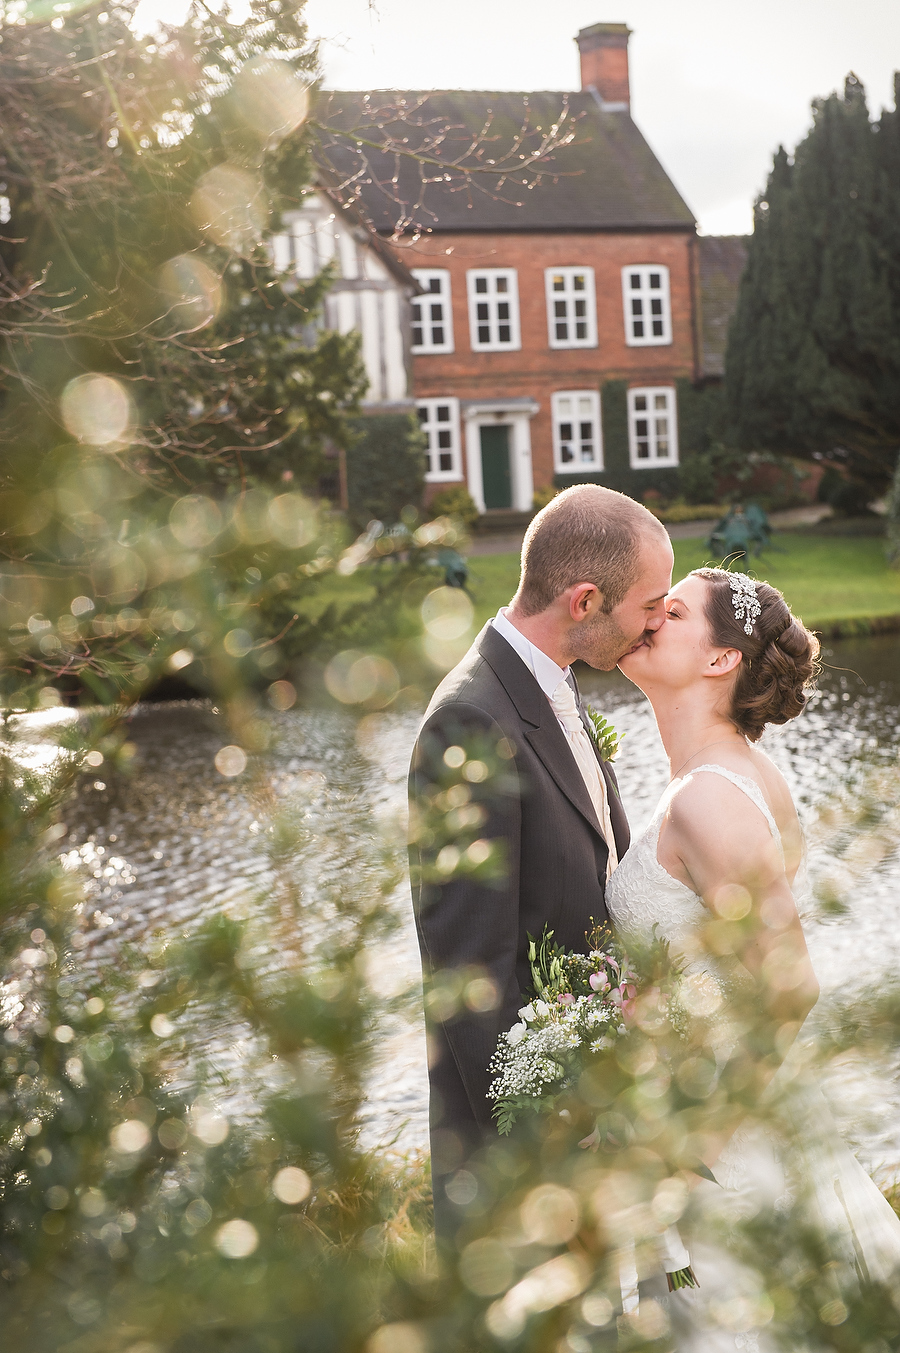 Creative Spring portraits of Bride and Groom at The Moat House in Stafford by Stafford Contemporary Wedding Photographer Barry James